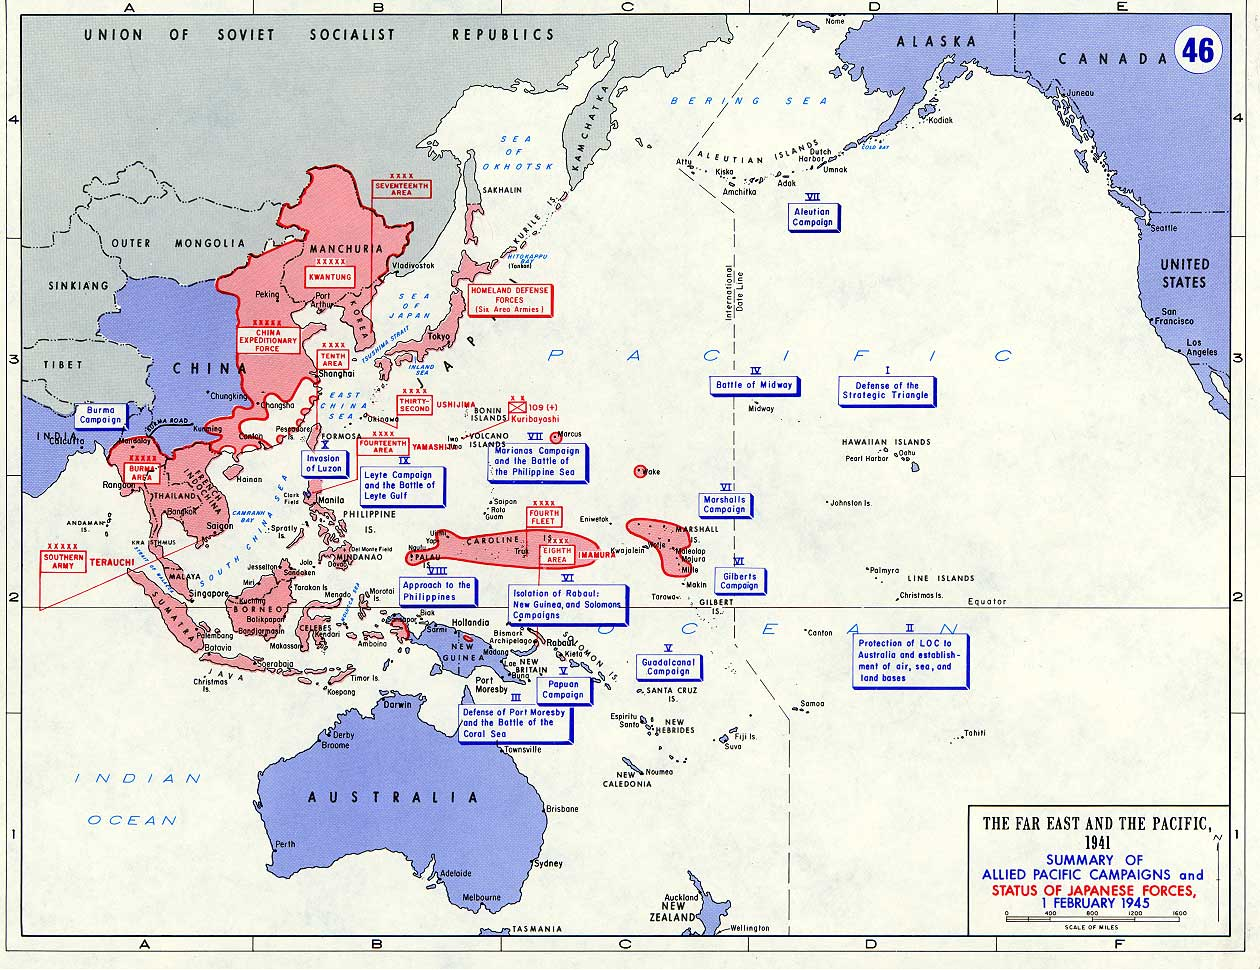 World War II - Asia-Pacific | United States Military Academy ... on map of japan in 600-1400, map japan 1939, map of heian era japan, map of japan meiji, map of early japan, map of 109 in japan,